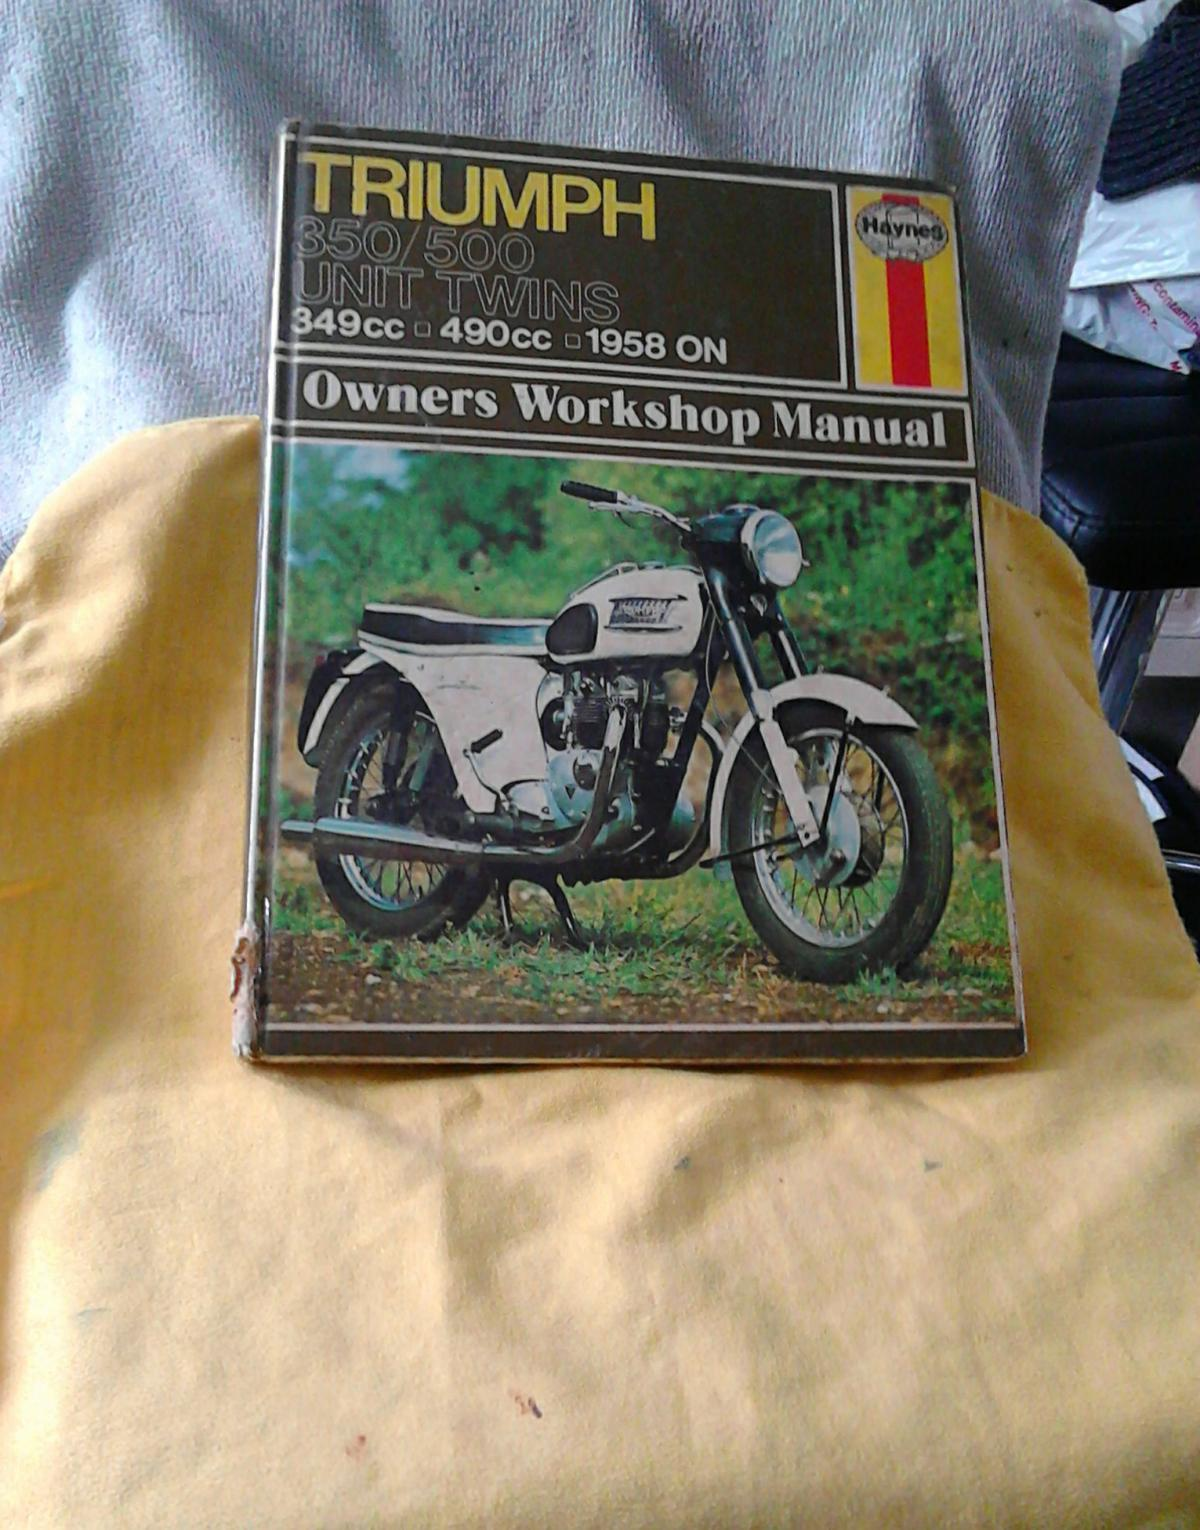 EARLY HAYNES TRIUMPH 350 & 500 Workshop Manual, used condition, these Books are rare, see pictures, £4 each.